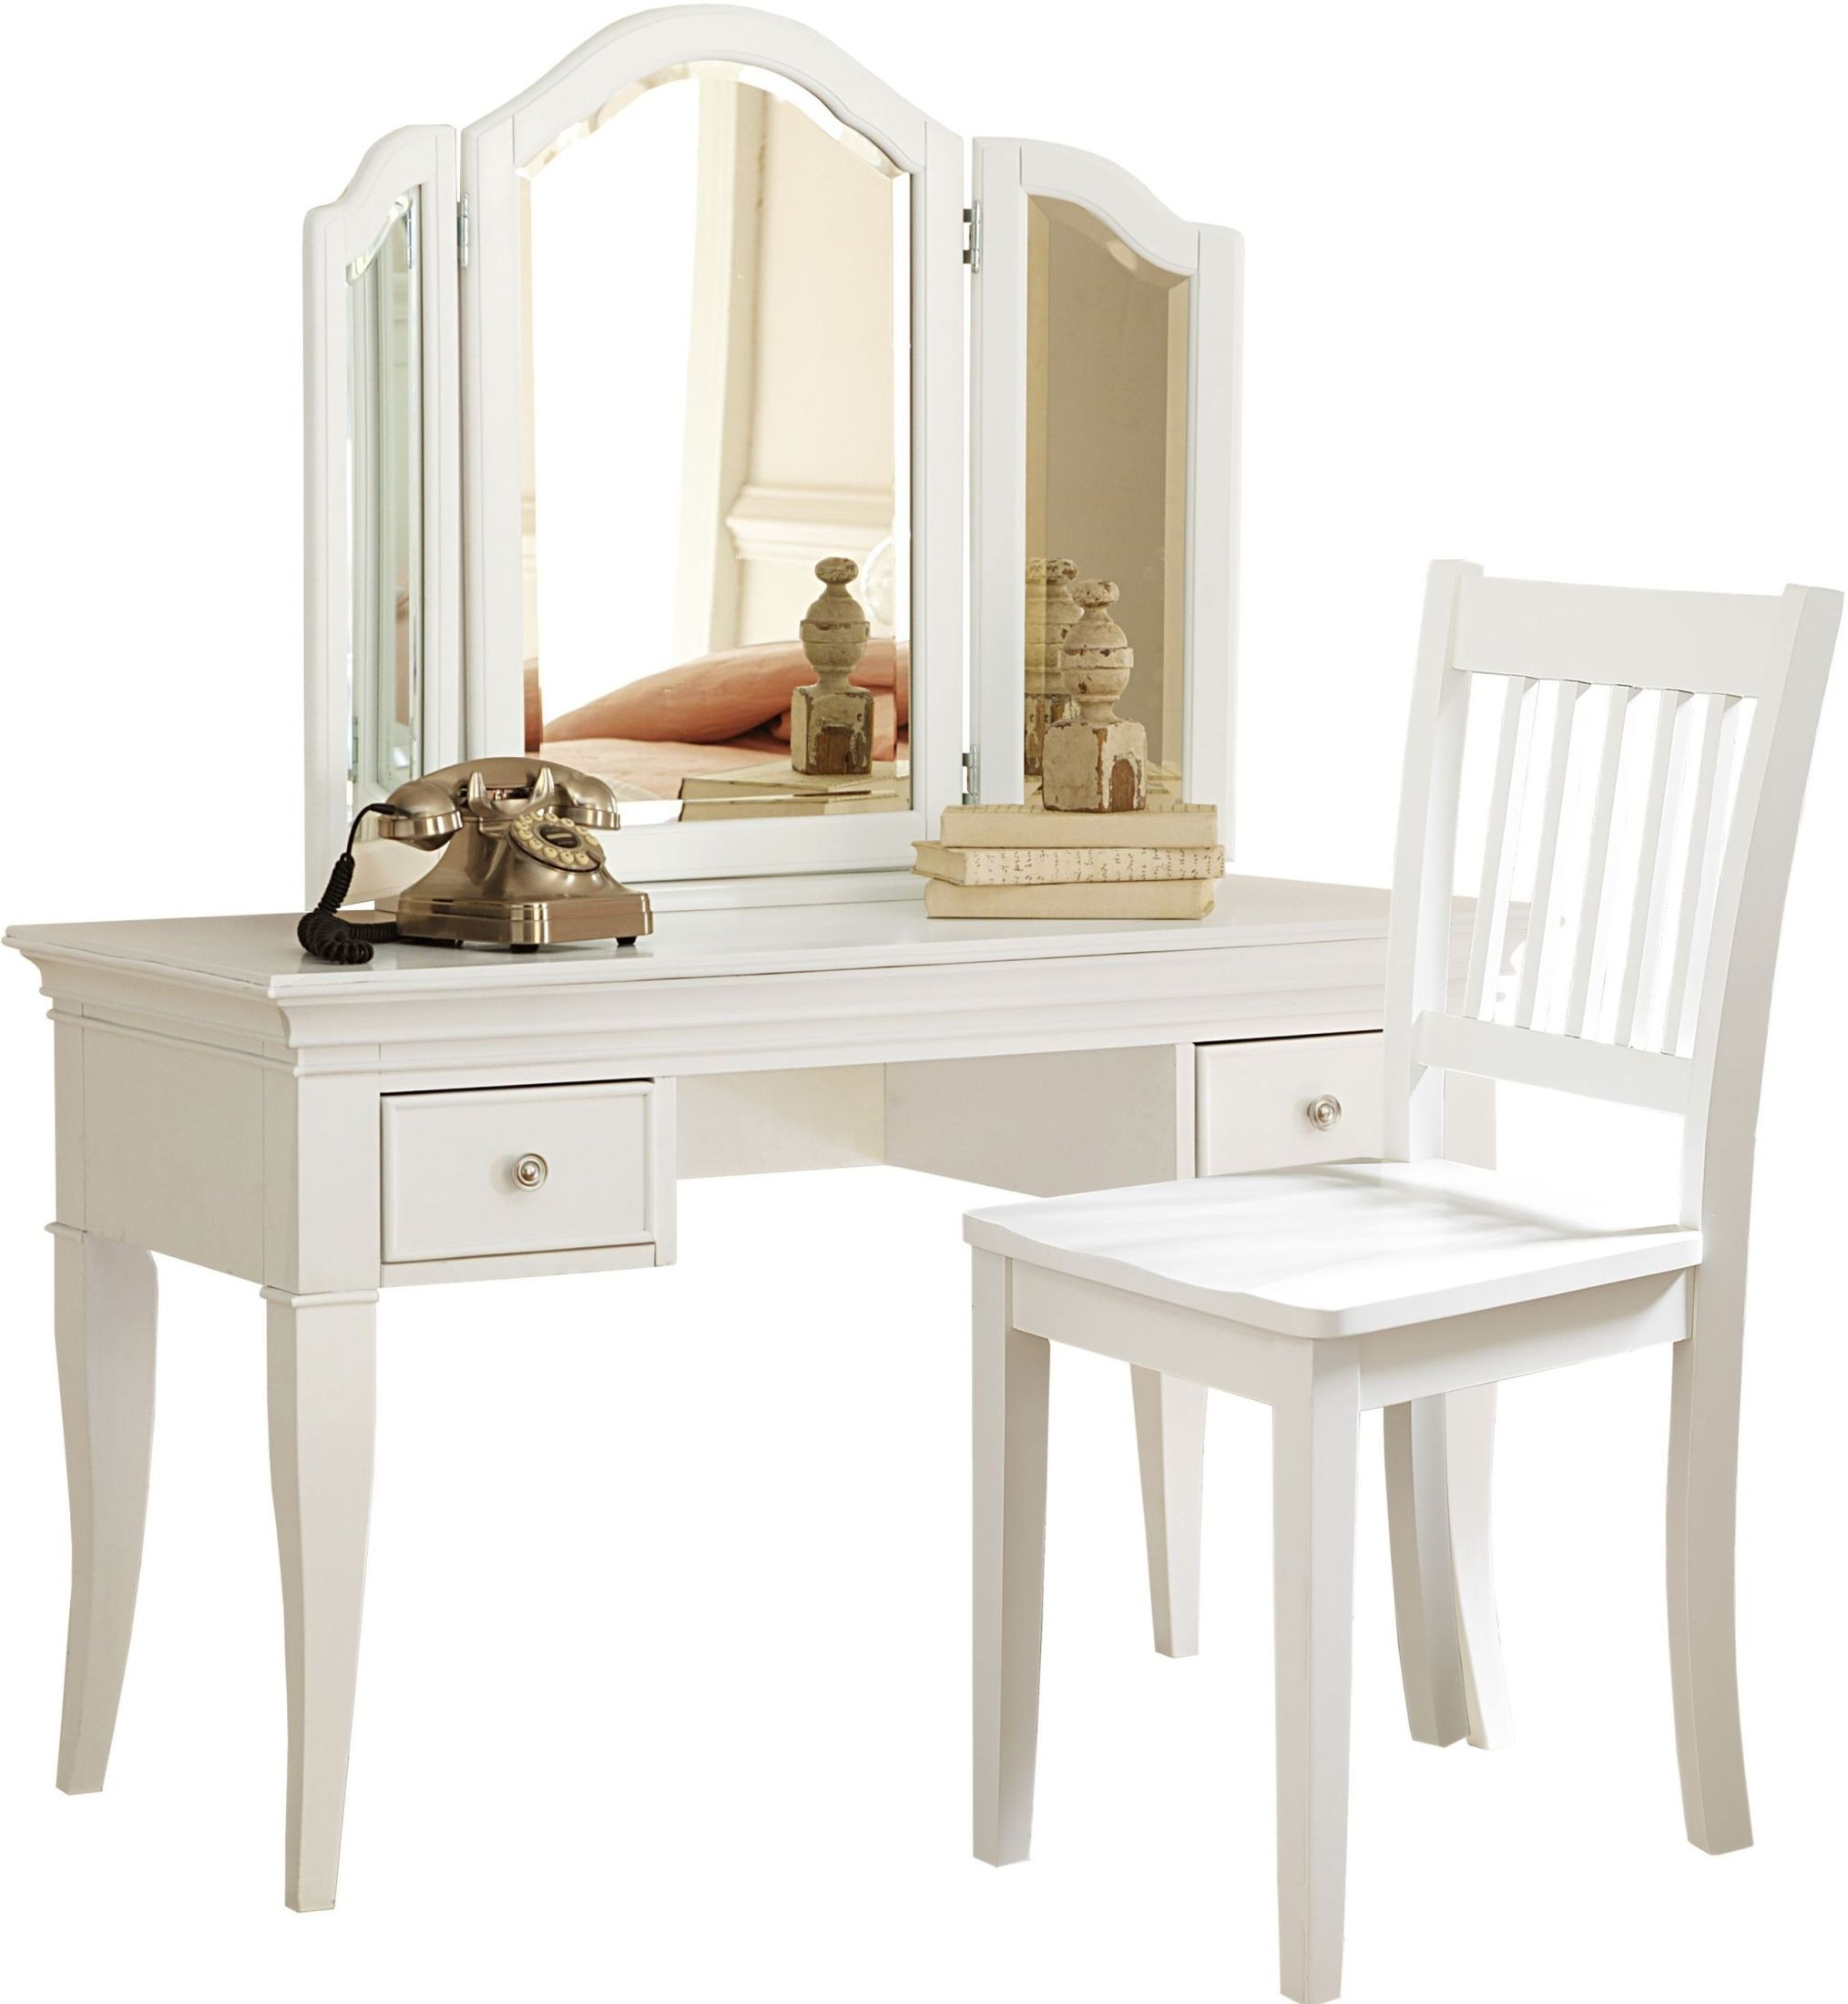 vanity with chair and mirror metal lawn chairs walnut street white desk storage